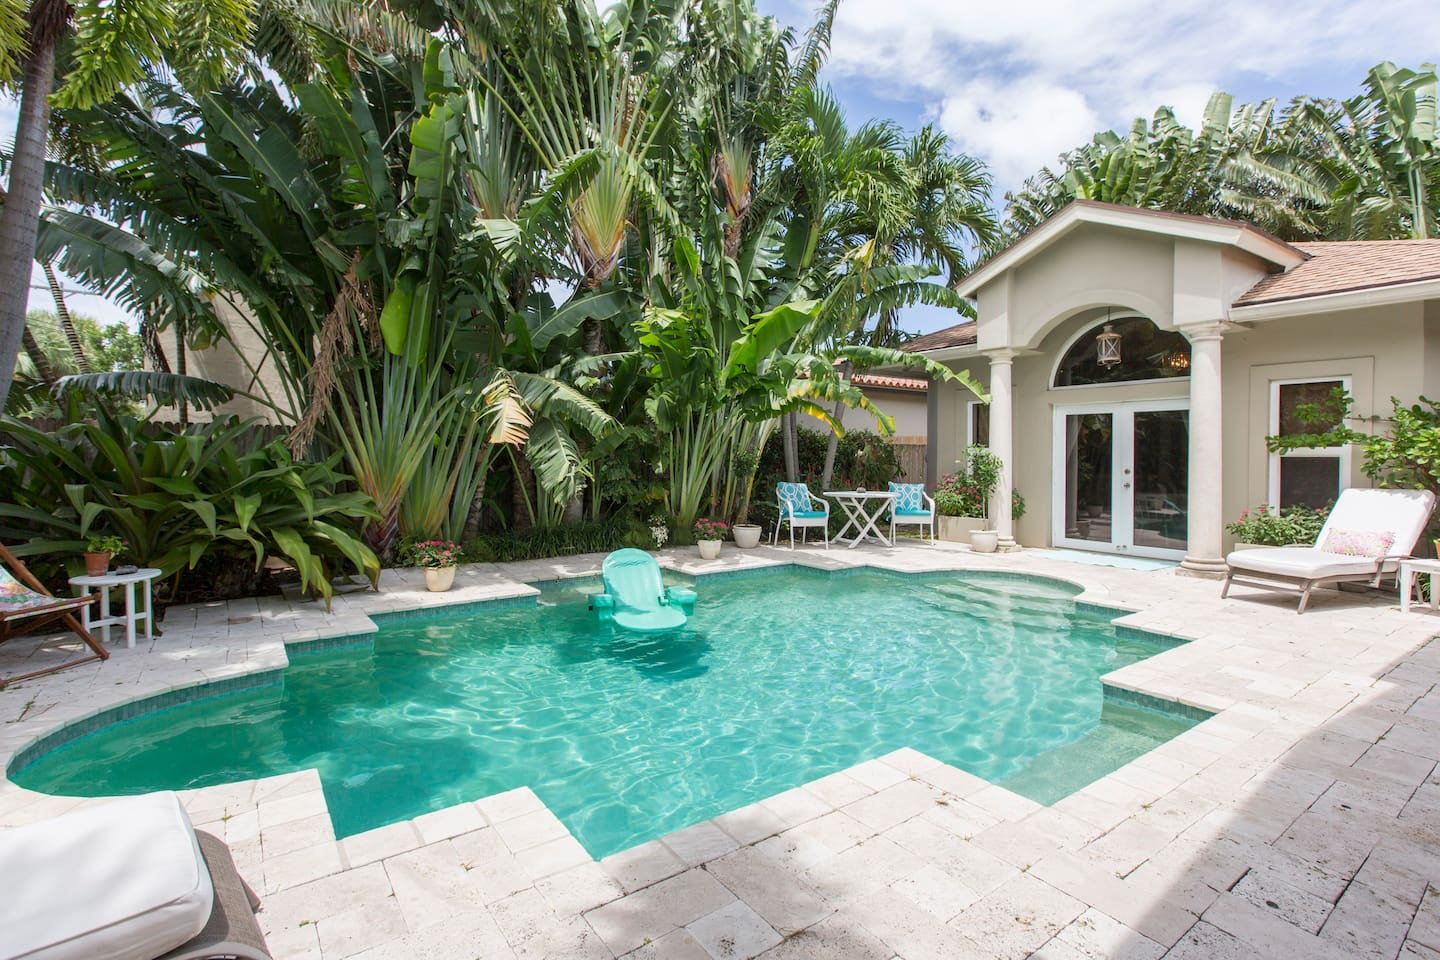 View of the pool and cabana - the back patio is quiet and relaxing and the trees and bushes surrounding the yard make it private and comfortable.